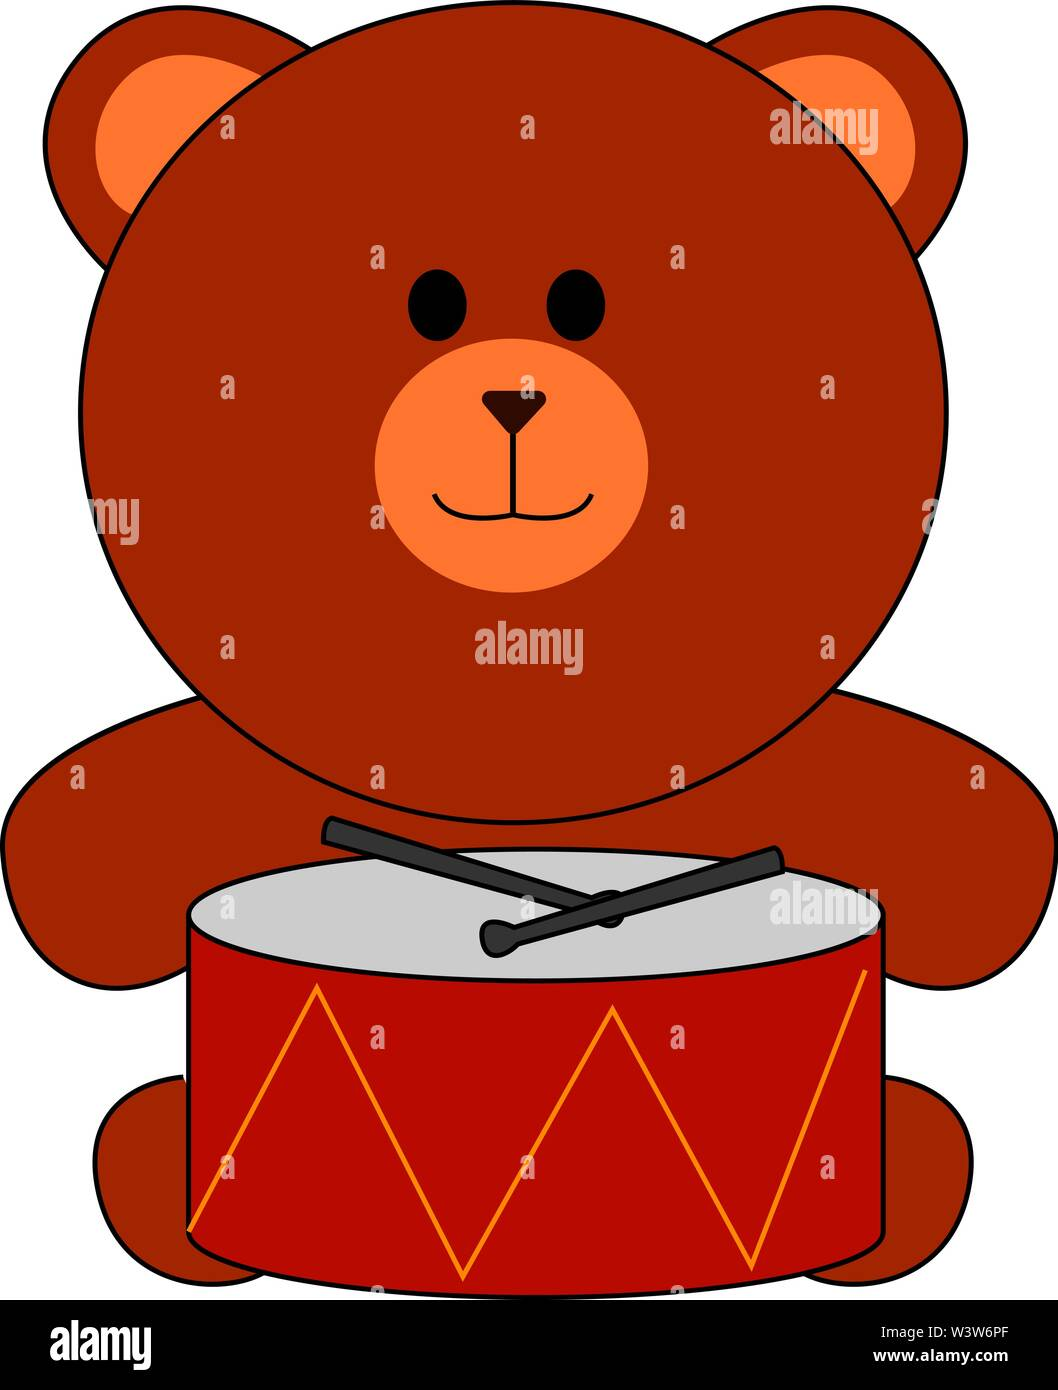 Toy bear and drums, illustration, vector on white background. - Stock Image